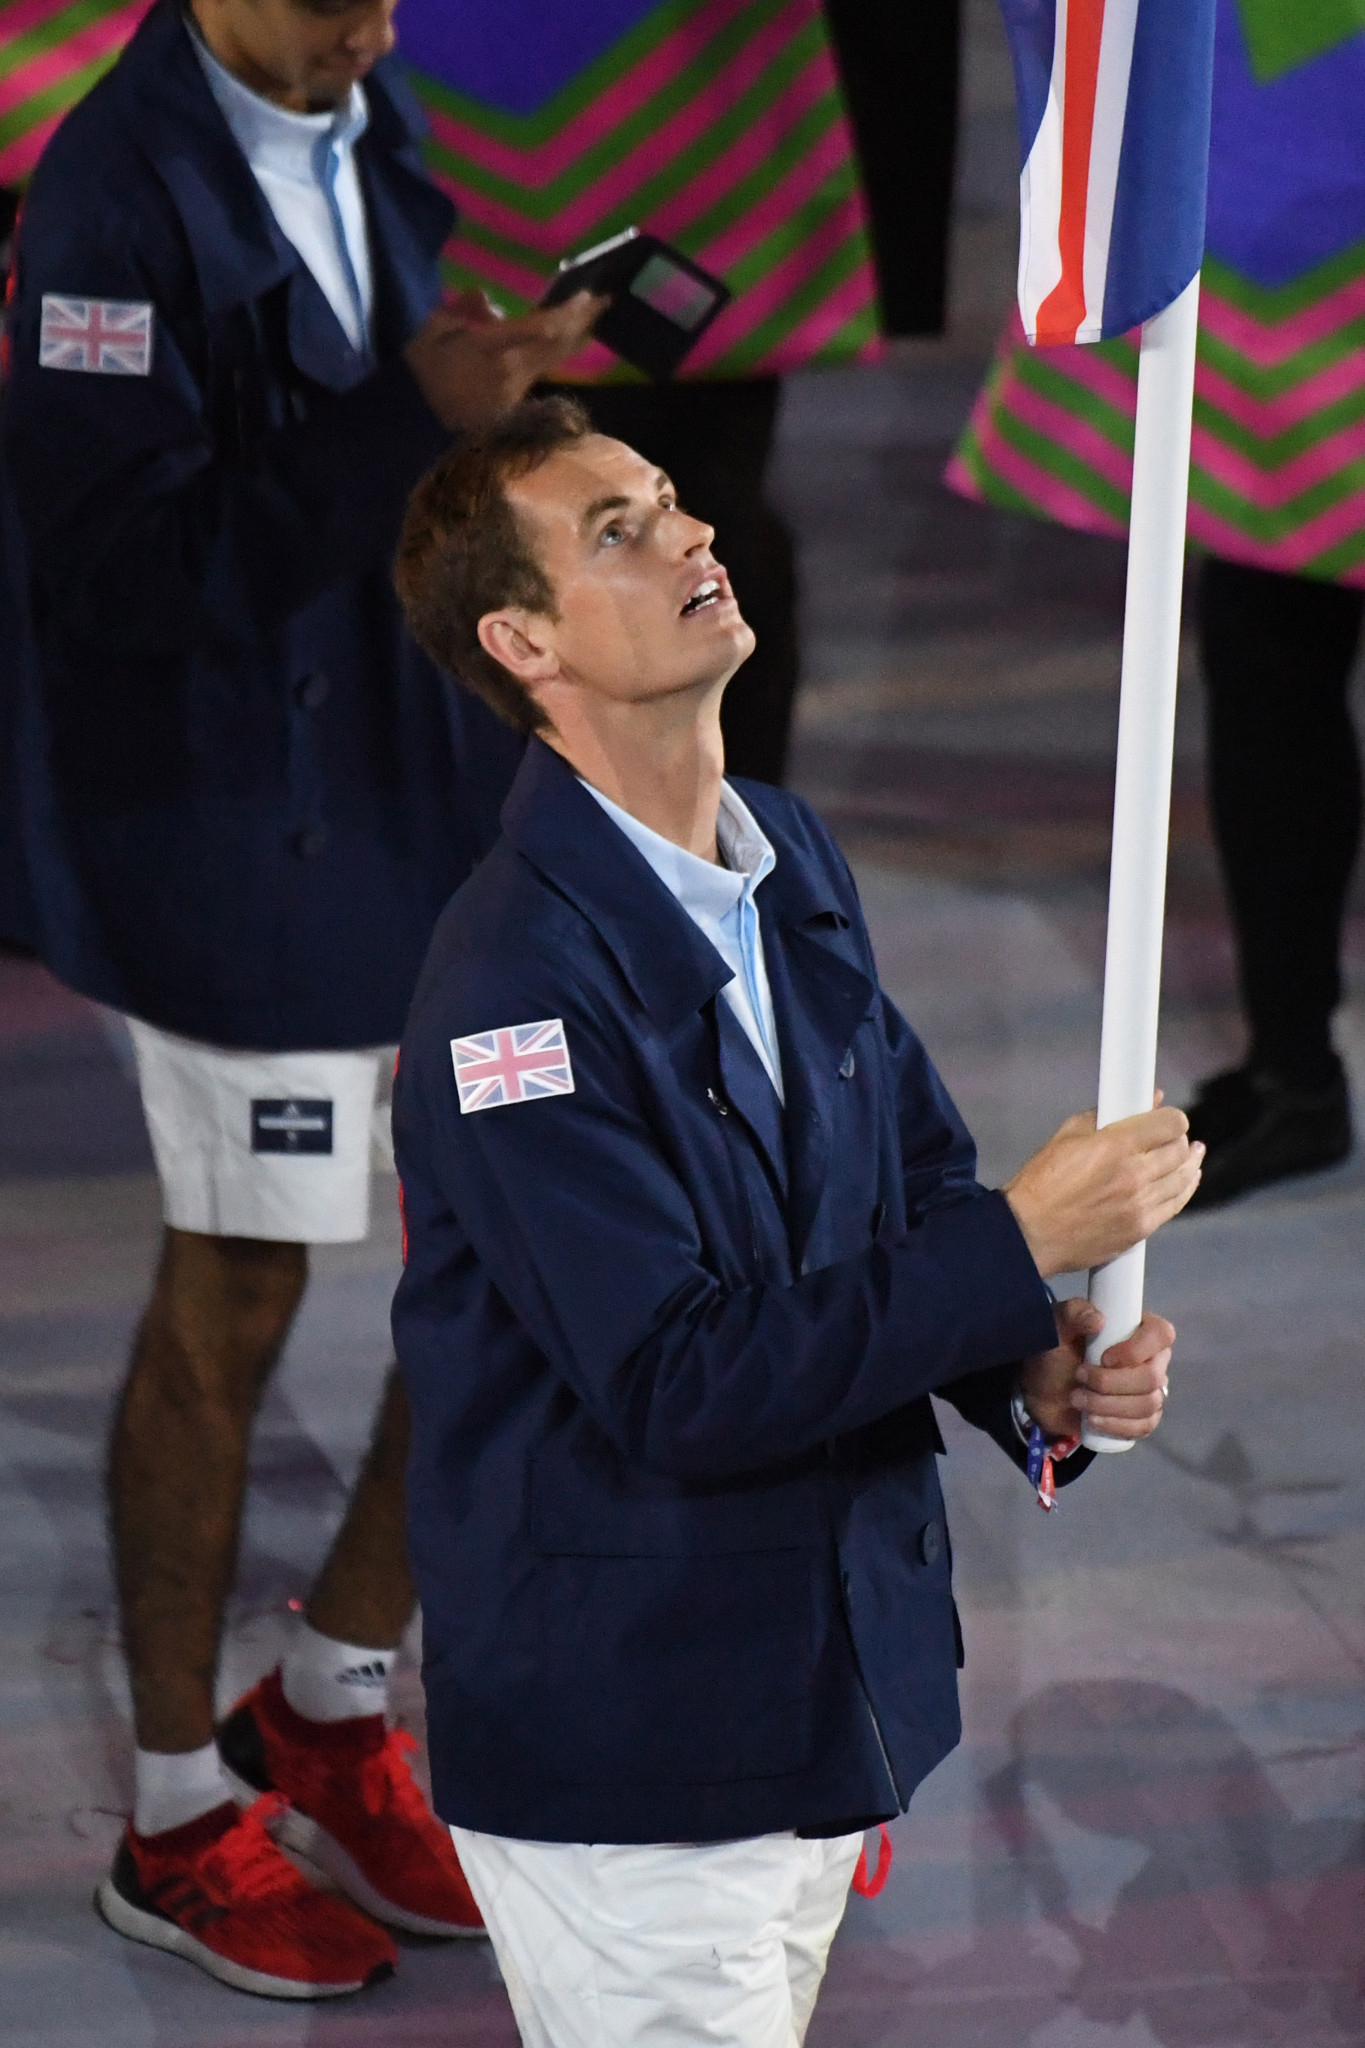 Sir Andy Murray was flagbearer for Team GB at Rio 2016 before winning his second consecutive Olympic gold medal in the men's singles, defending the title he had won at London 2012 ©Getty Images